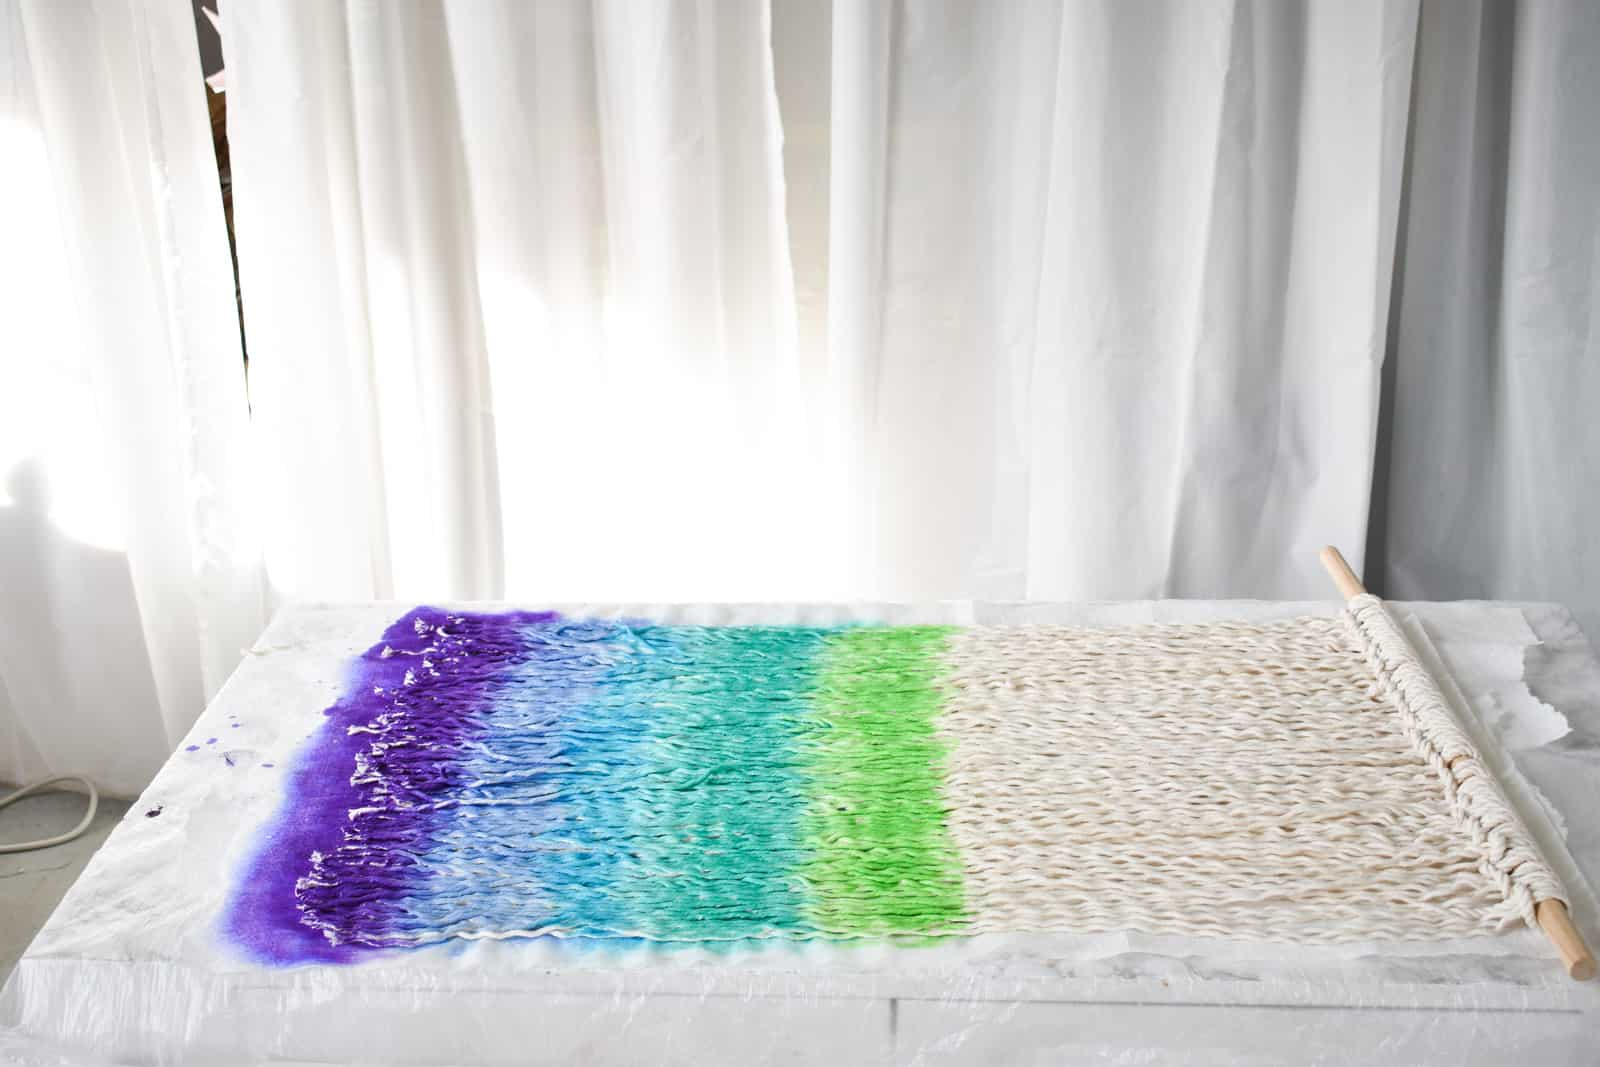 continue with dye in rainbow pattern